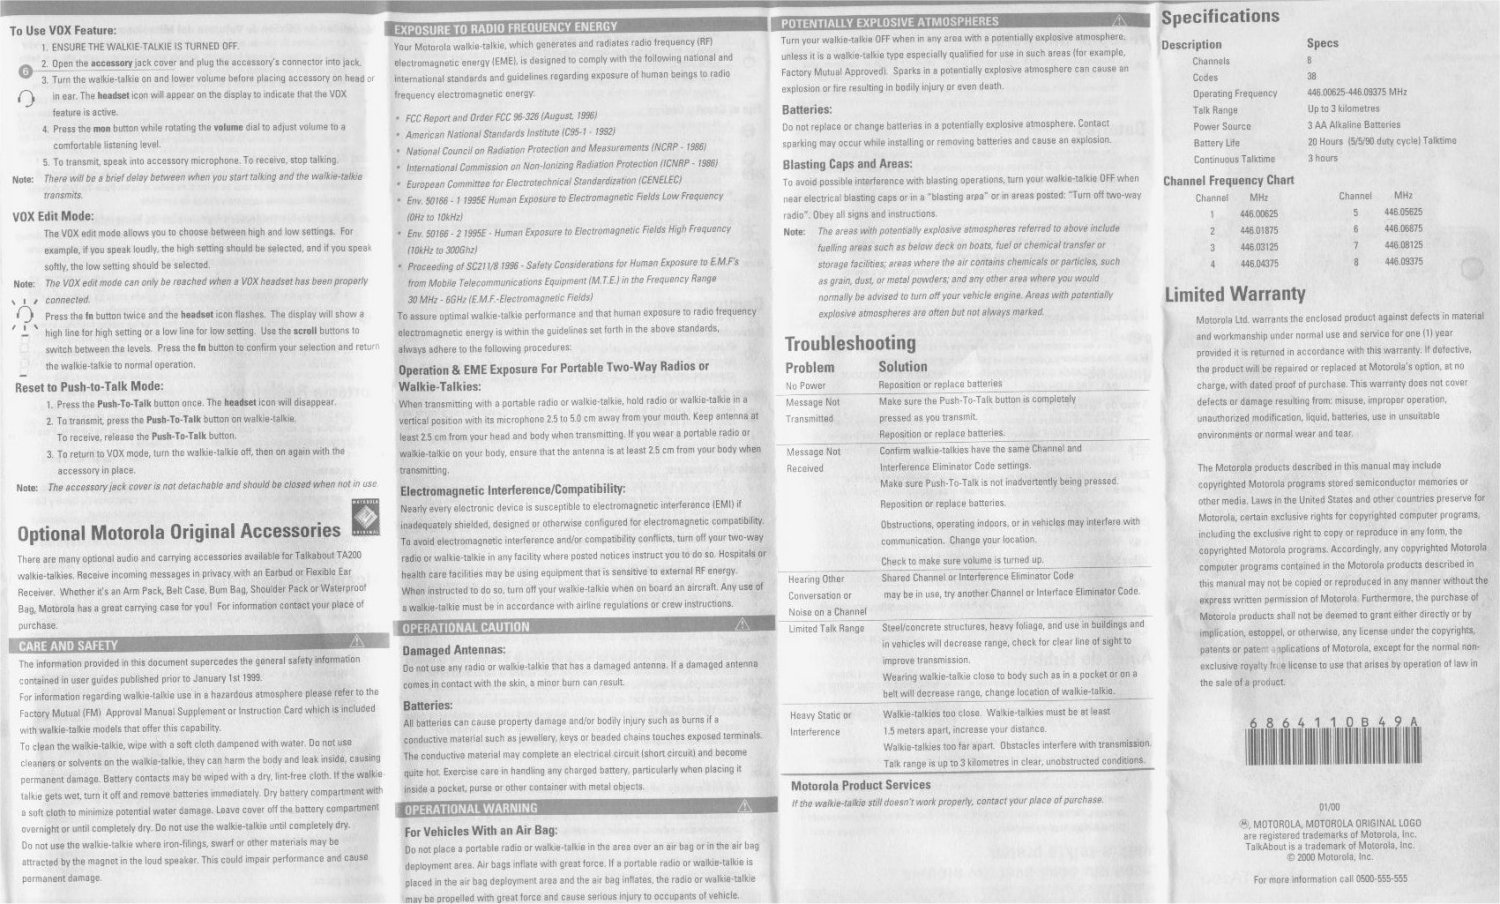 Motorola Walkie Talkie Manual : Free Programs, Utilities